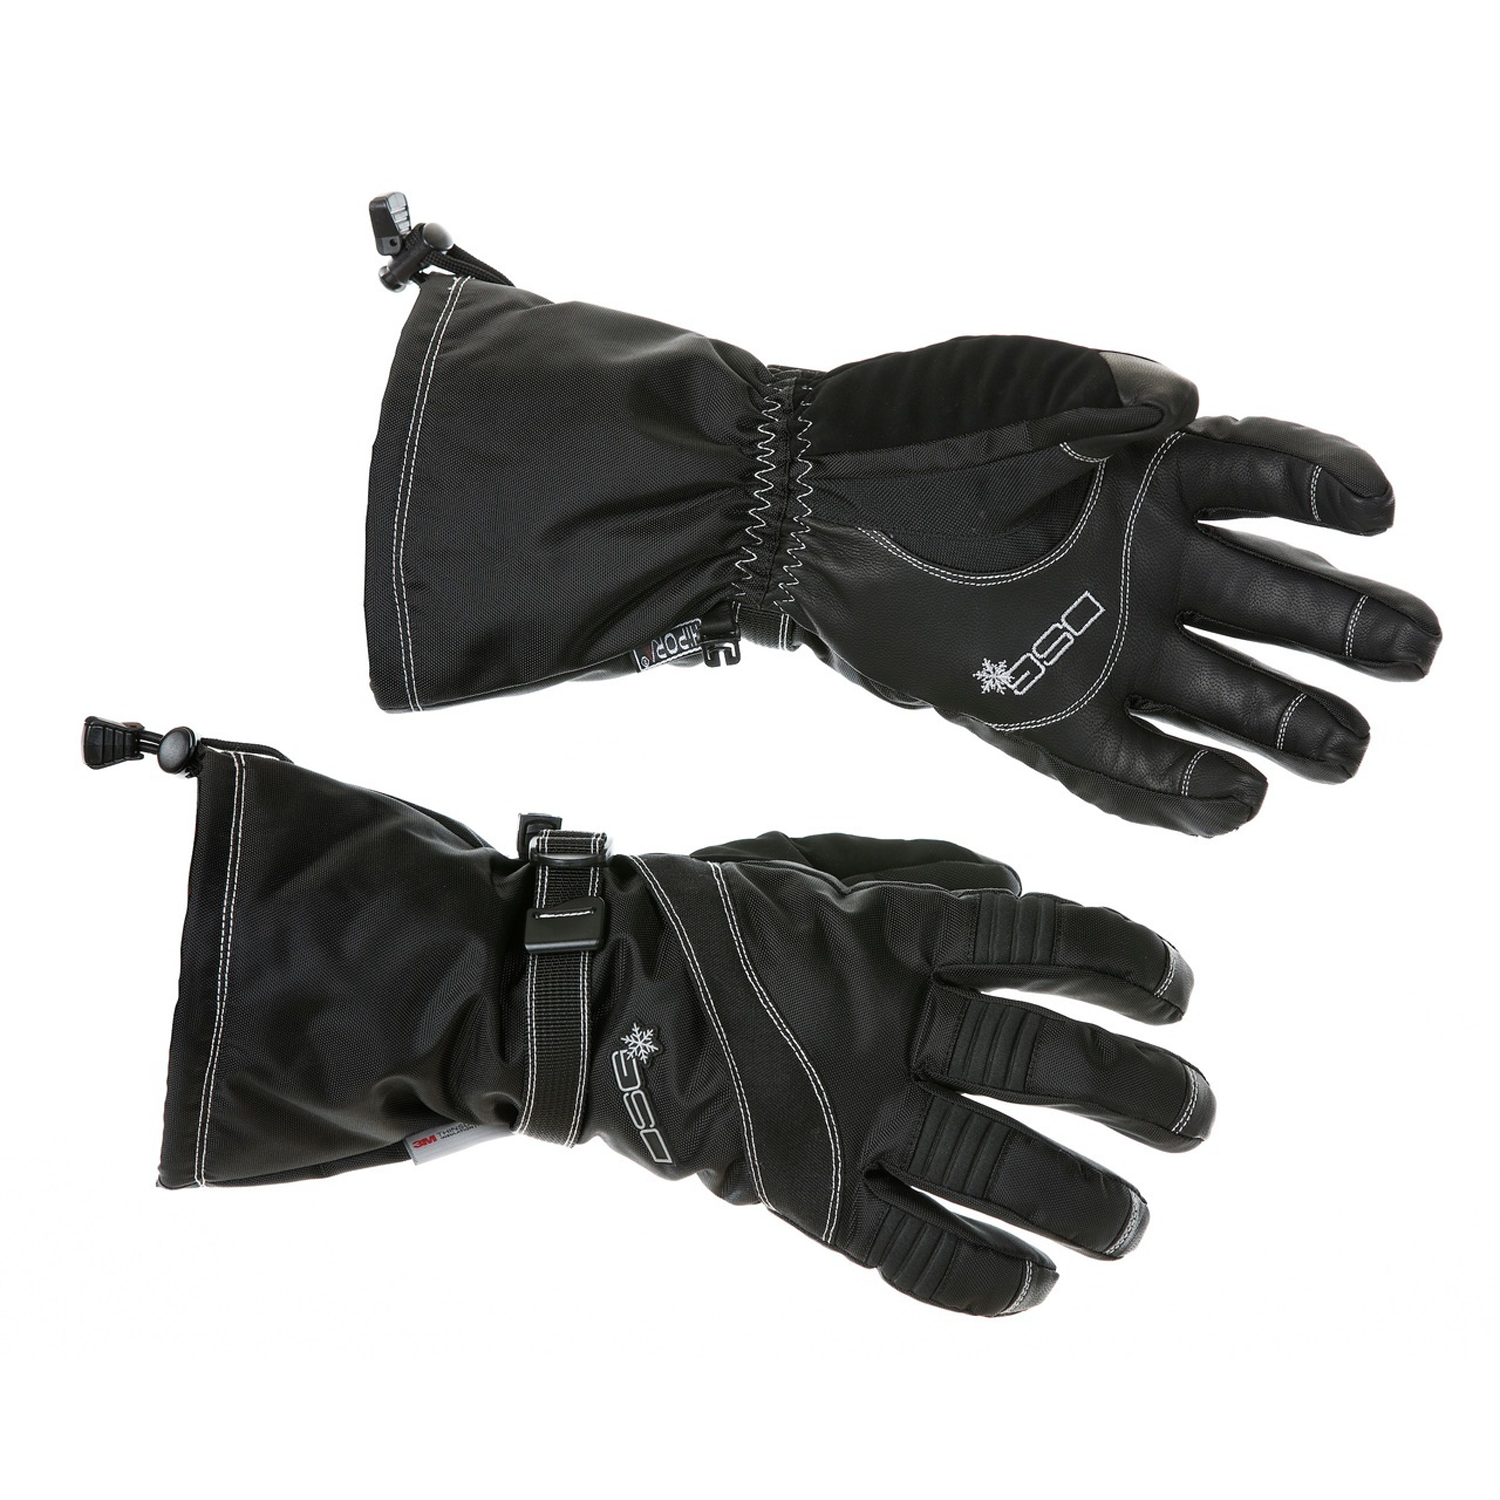 DSG Womens Trail Glove Black